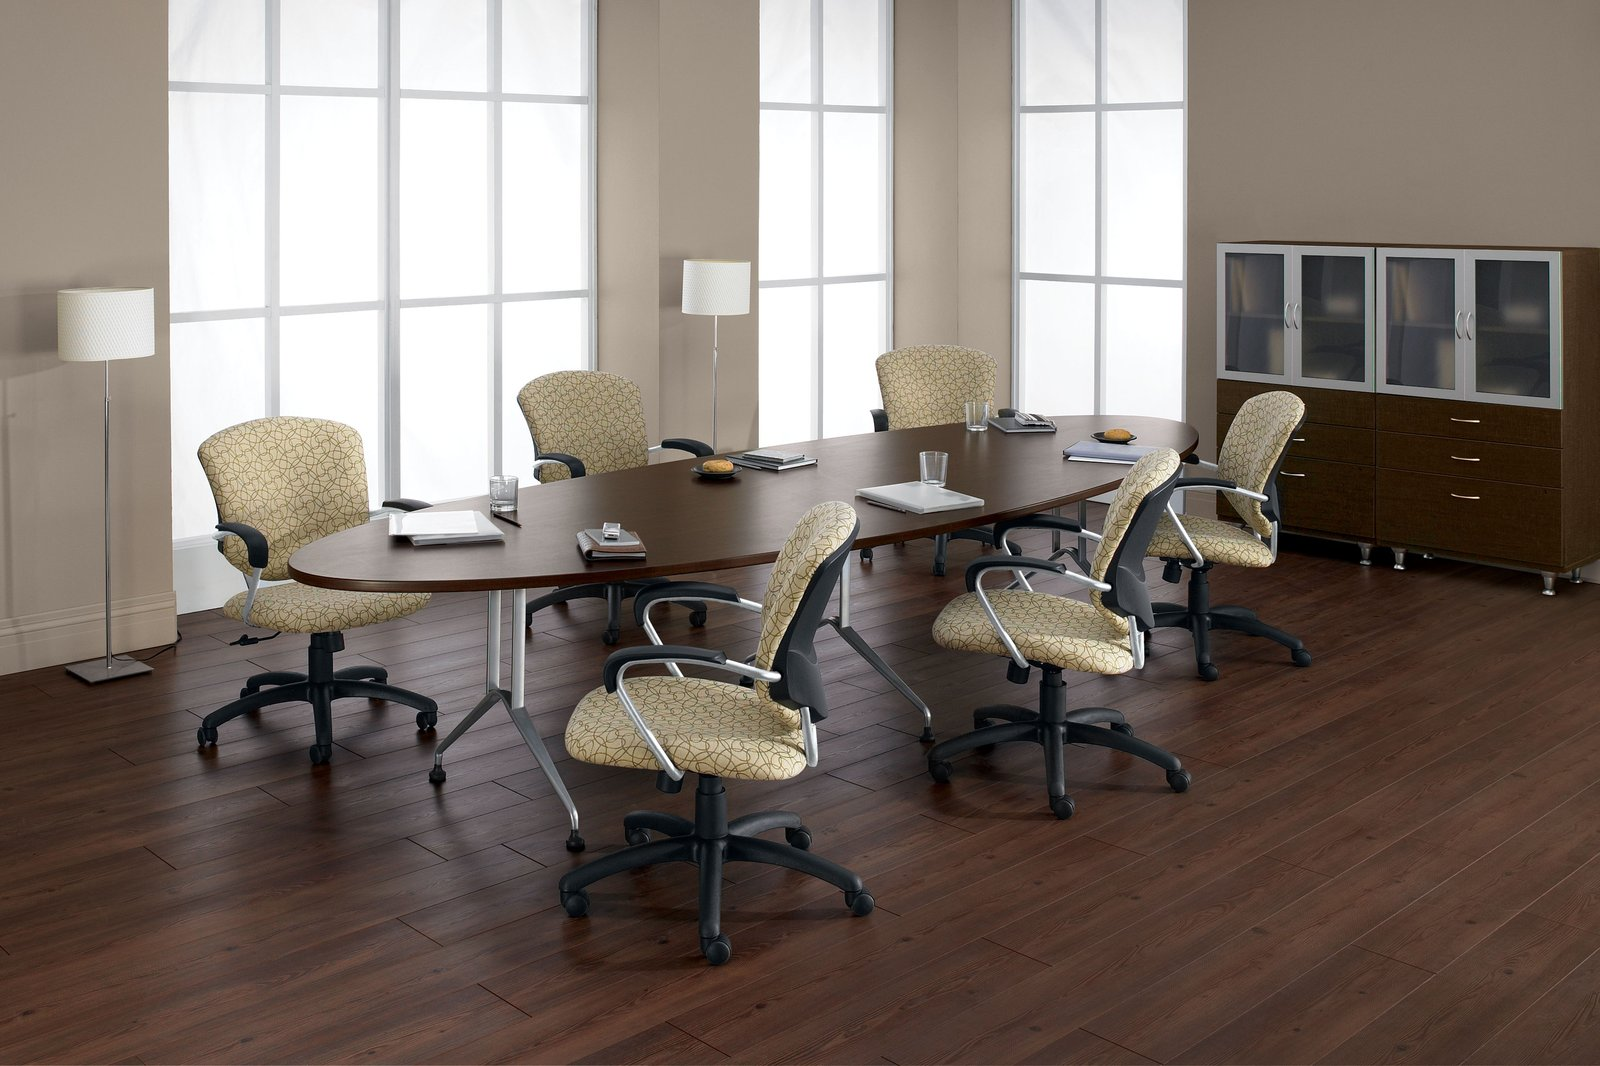 Studio photograph of six 5331-4 model Supra chairs placed at an oval conference table. Paned windows bring in light from the corner.